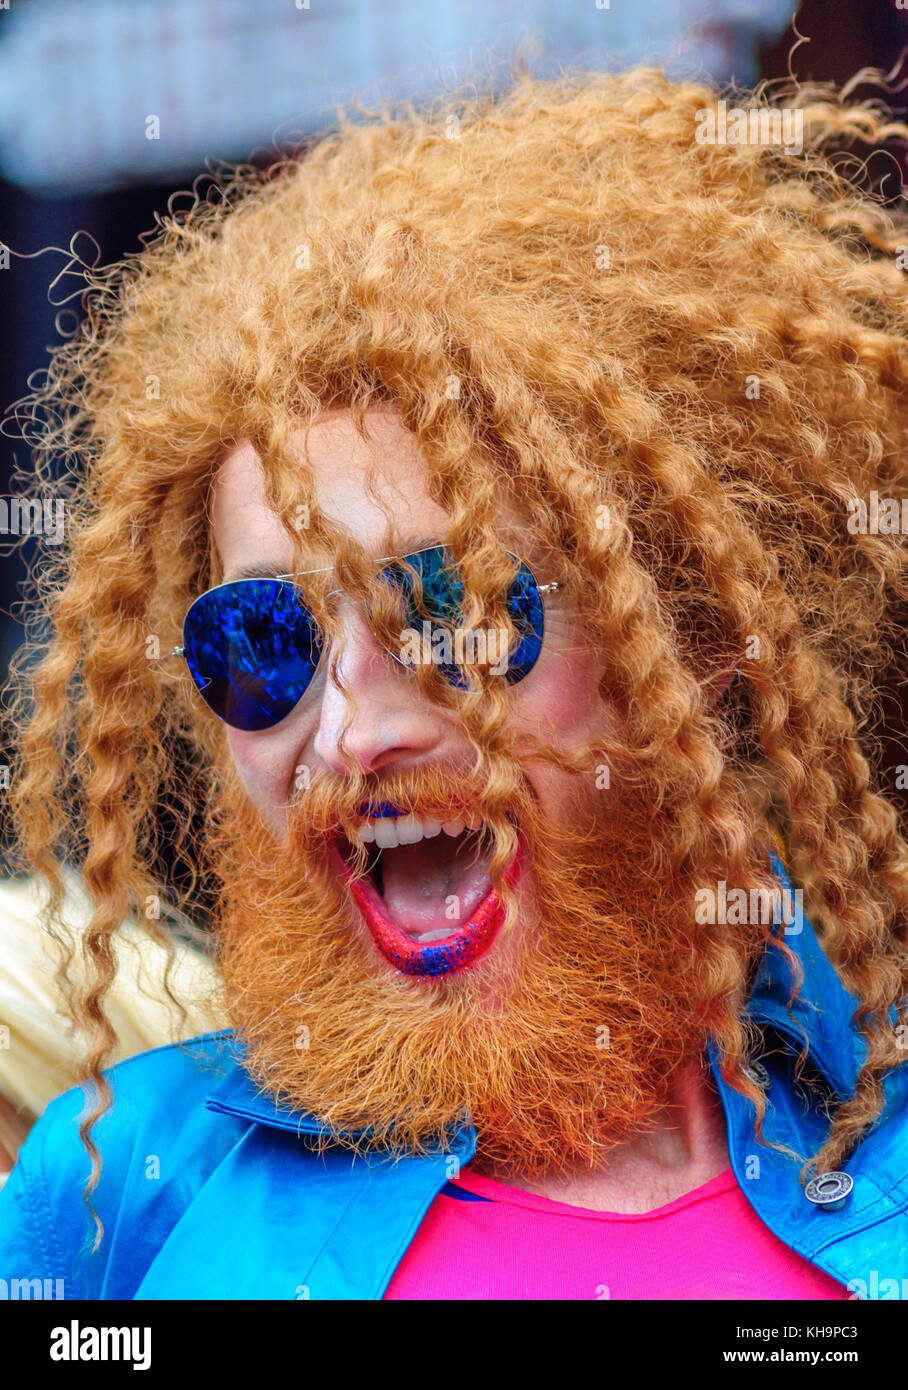 7ft tall drag artist Gingzilla with ginger braided hair, beard and moustache wearing blue mirror sunglasses during - Stock Image